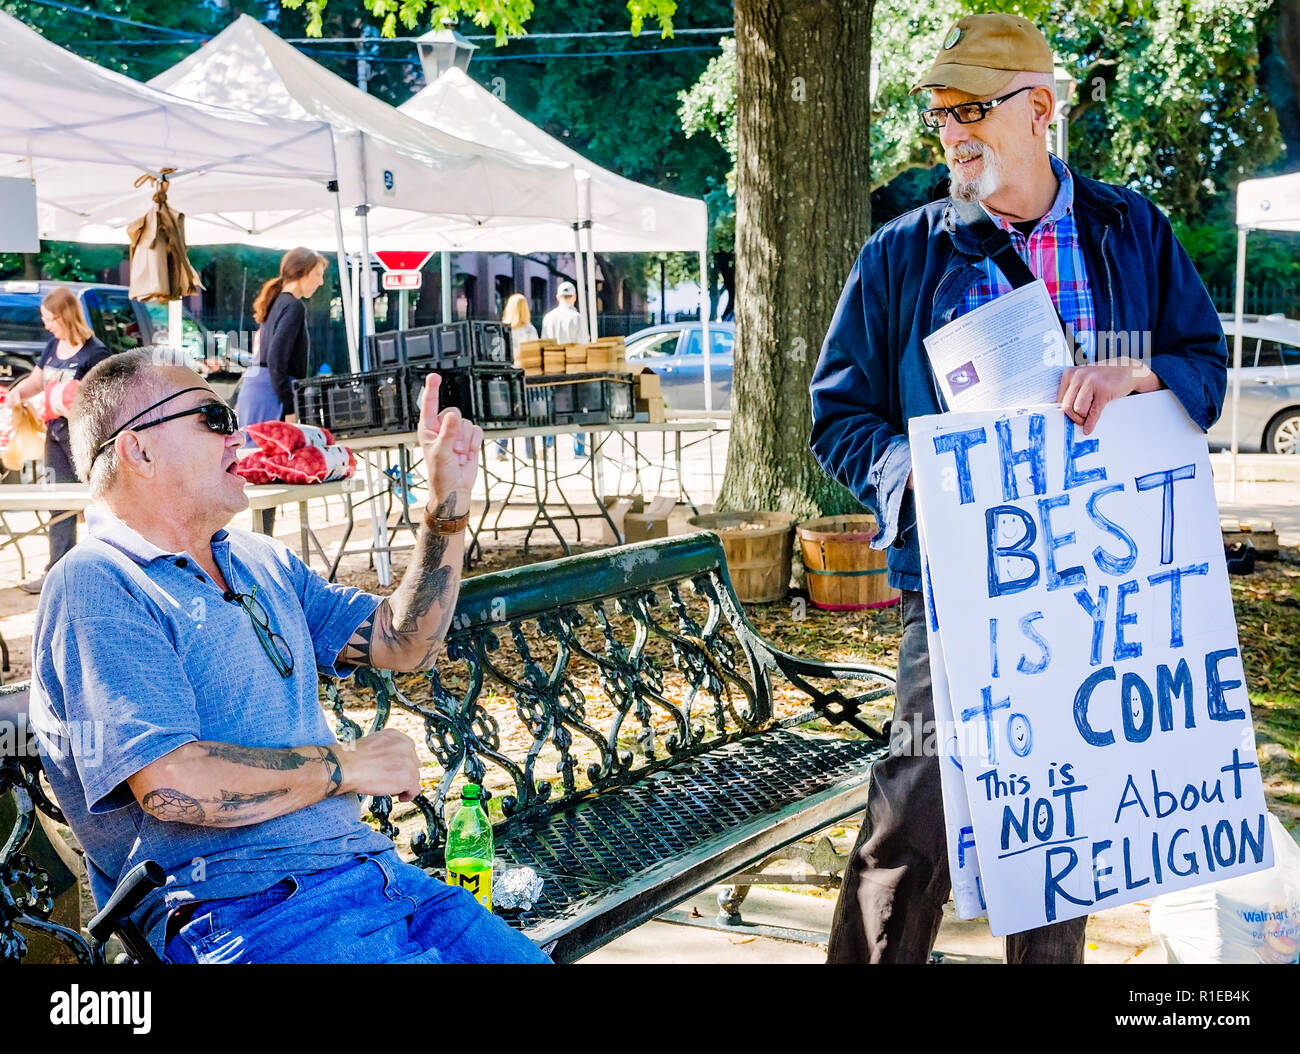 Two men discuss politics and current events at Market in the Park in Cathedral Square, Nov. 3, 2018, in Mobile, Alabama. - Stock Image